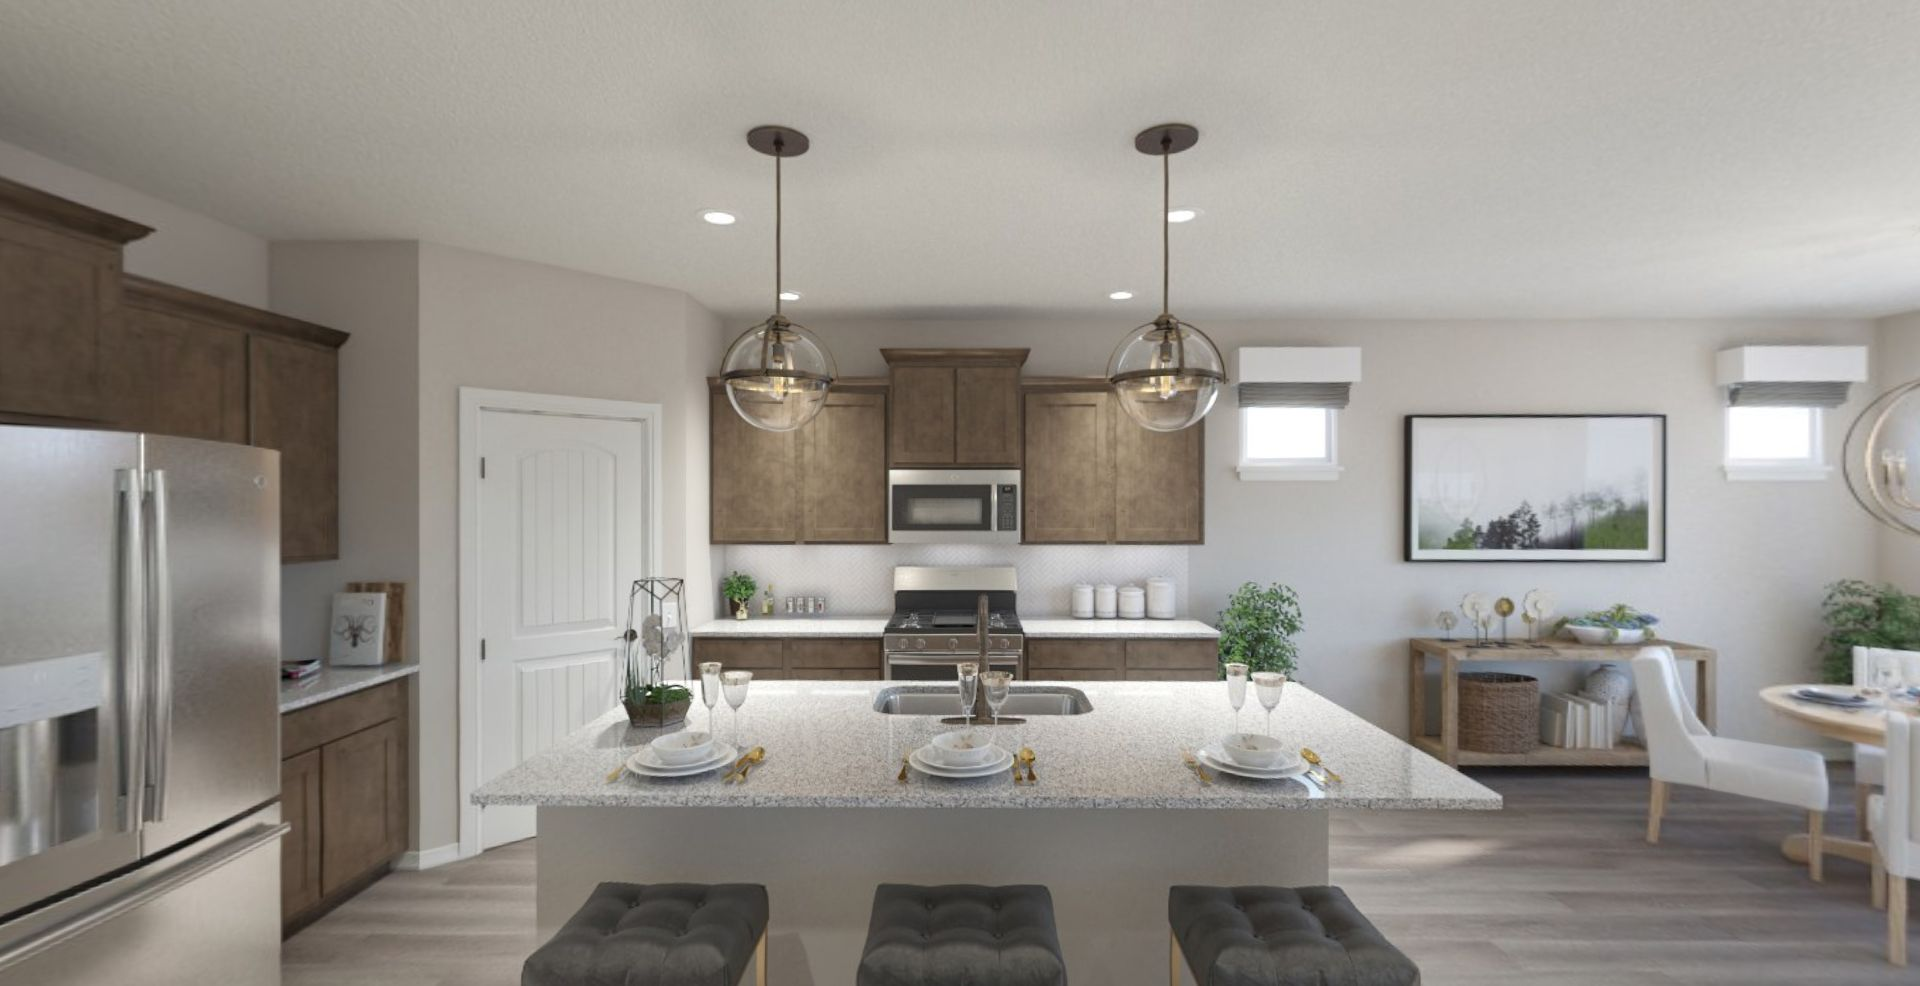 Kitchen featured in the Cadenza By Olthof Homes in Indianapolis, IN